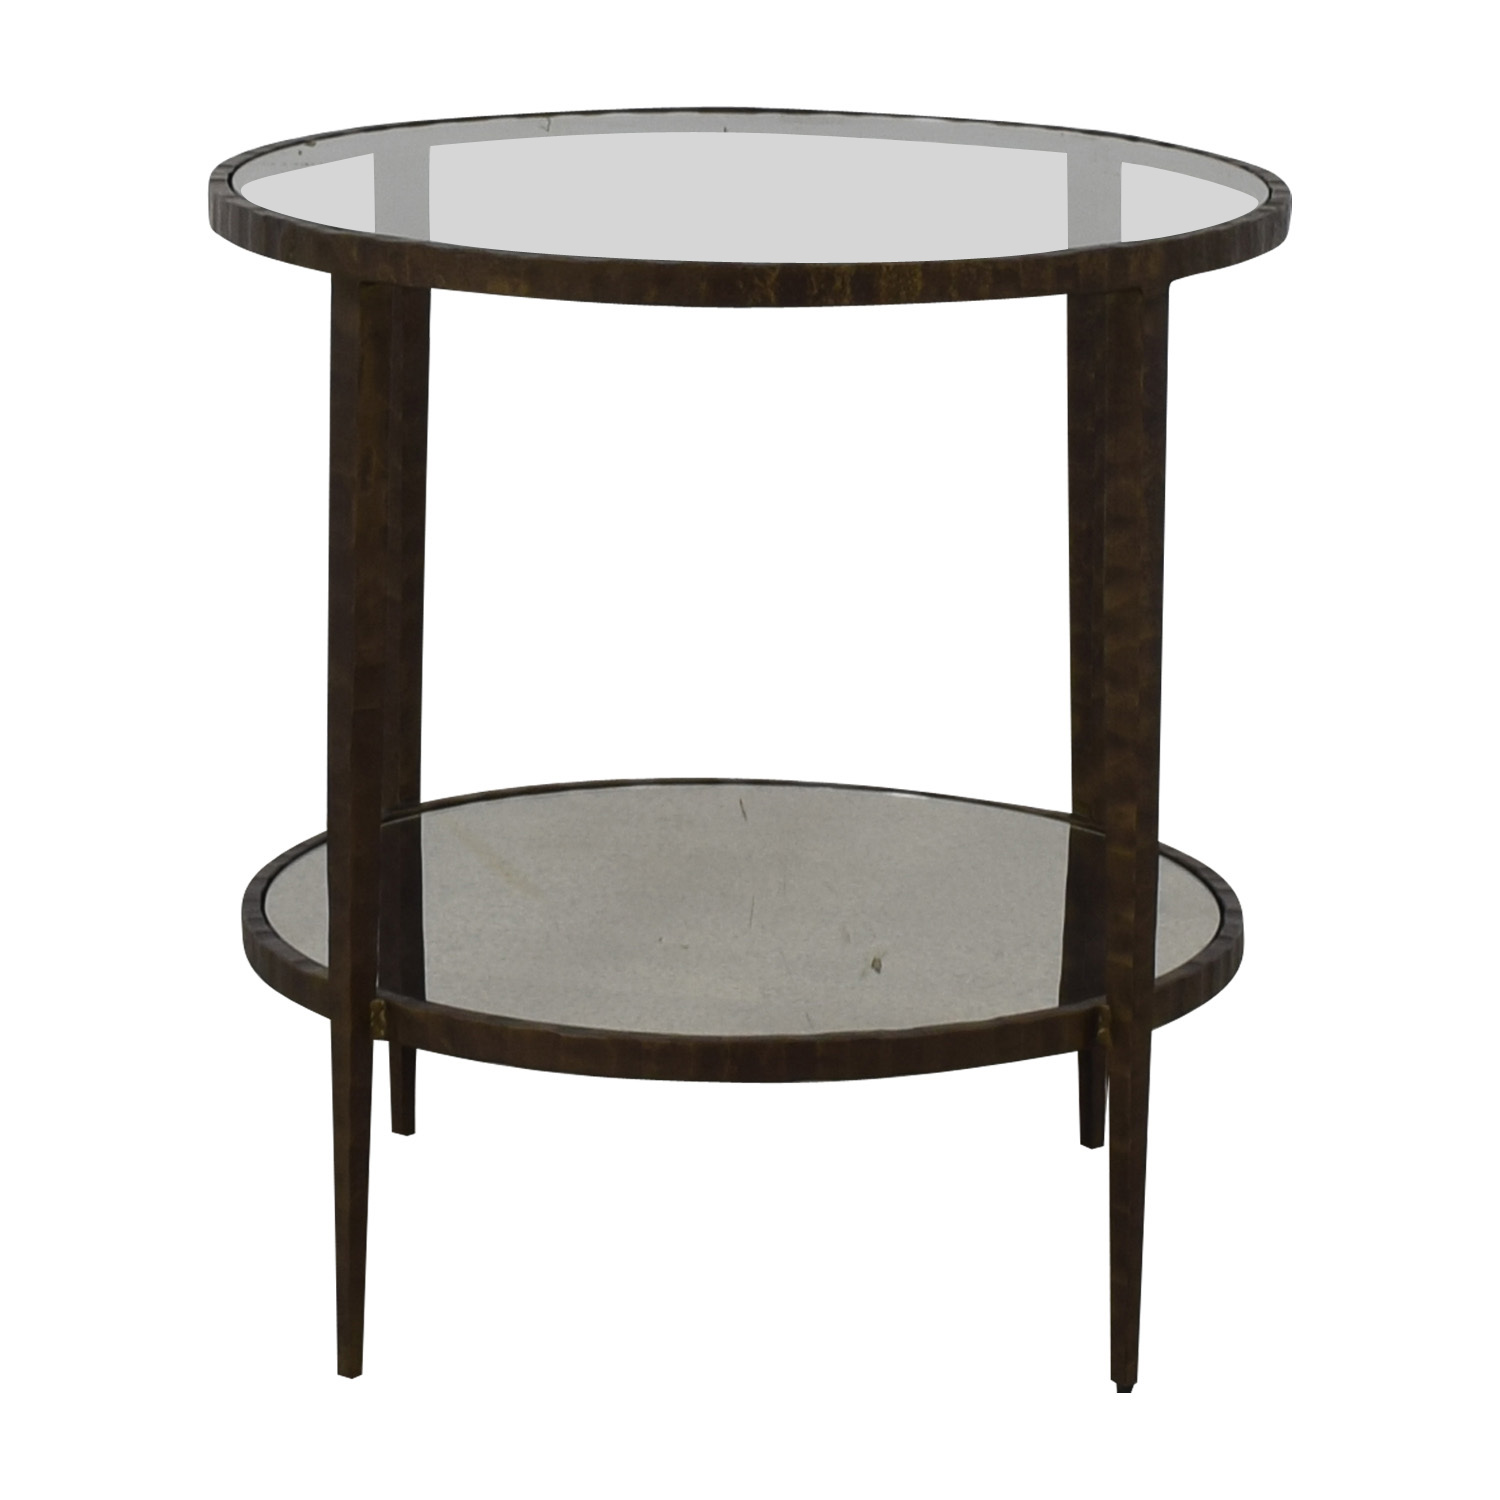 63 off crate barrel crate barrel clairemont round side table tables